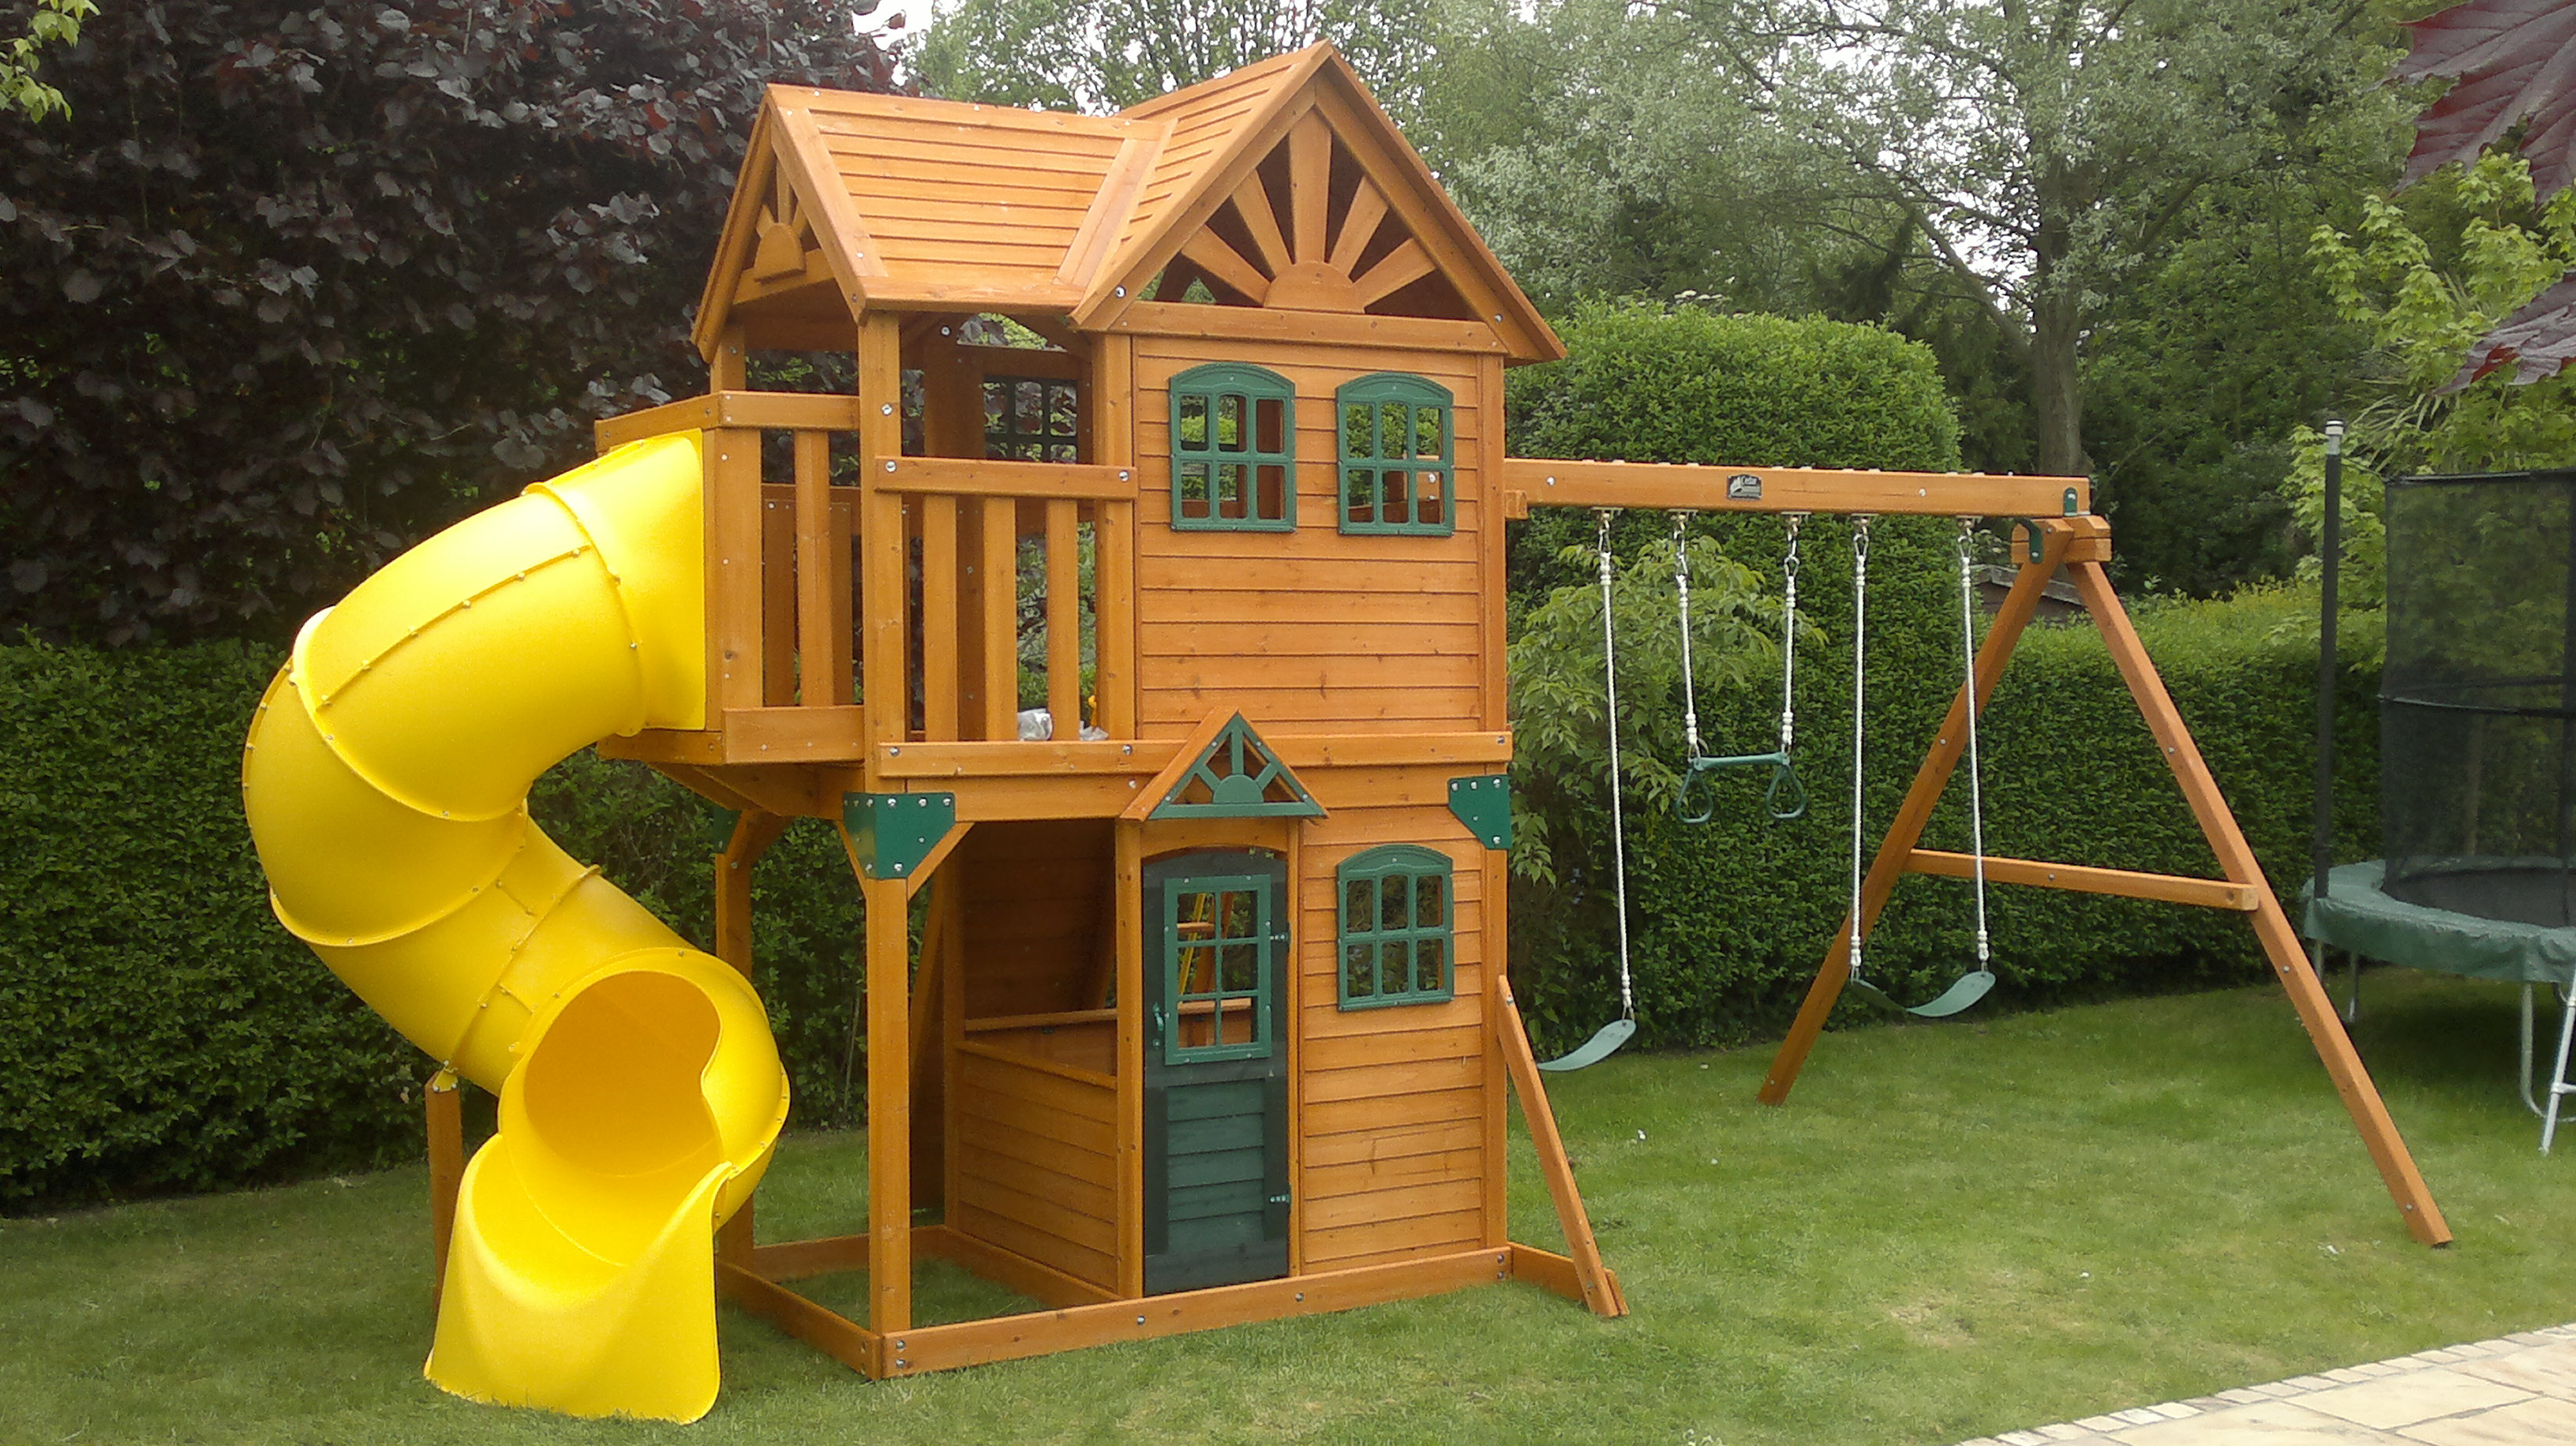 Furniture Charming Backyard Playsets For Kids Playground Ideas with regard to Cheap Backyard Playground Ideas